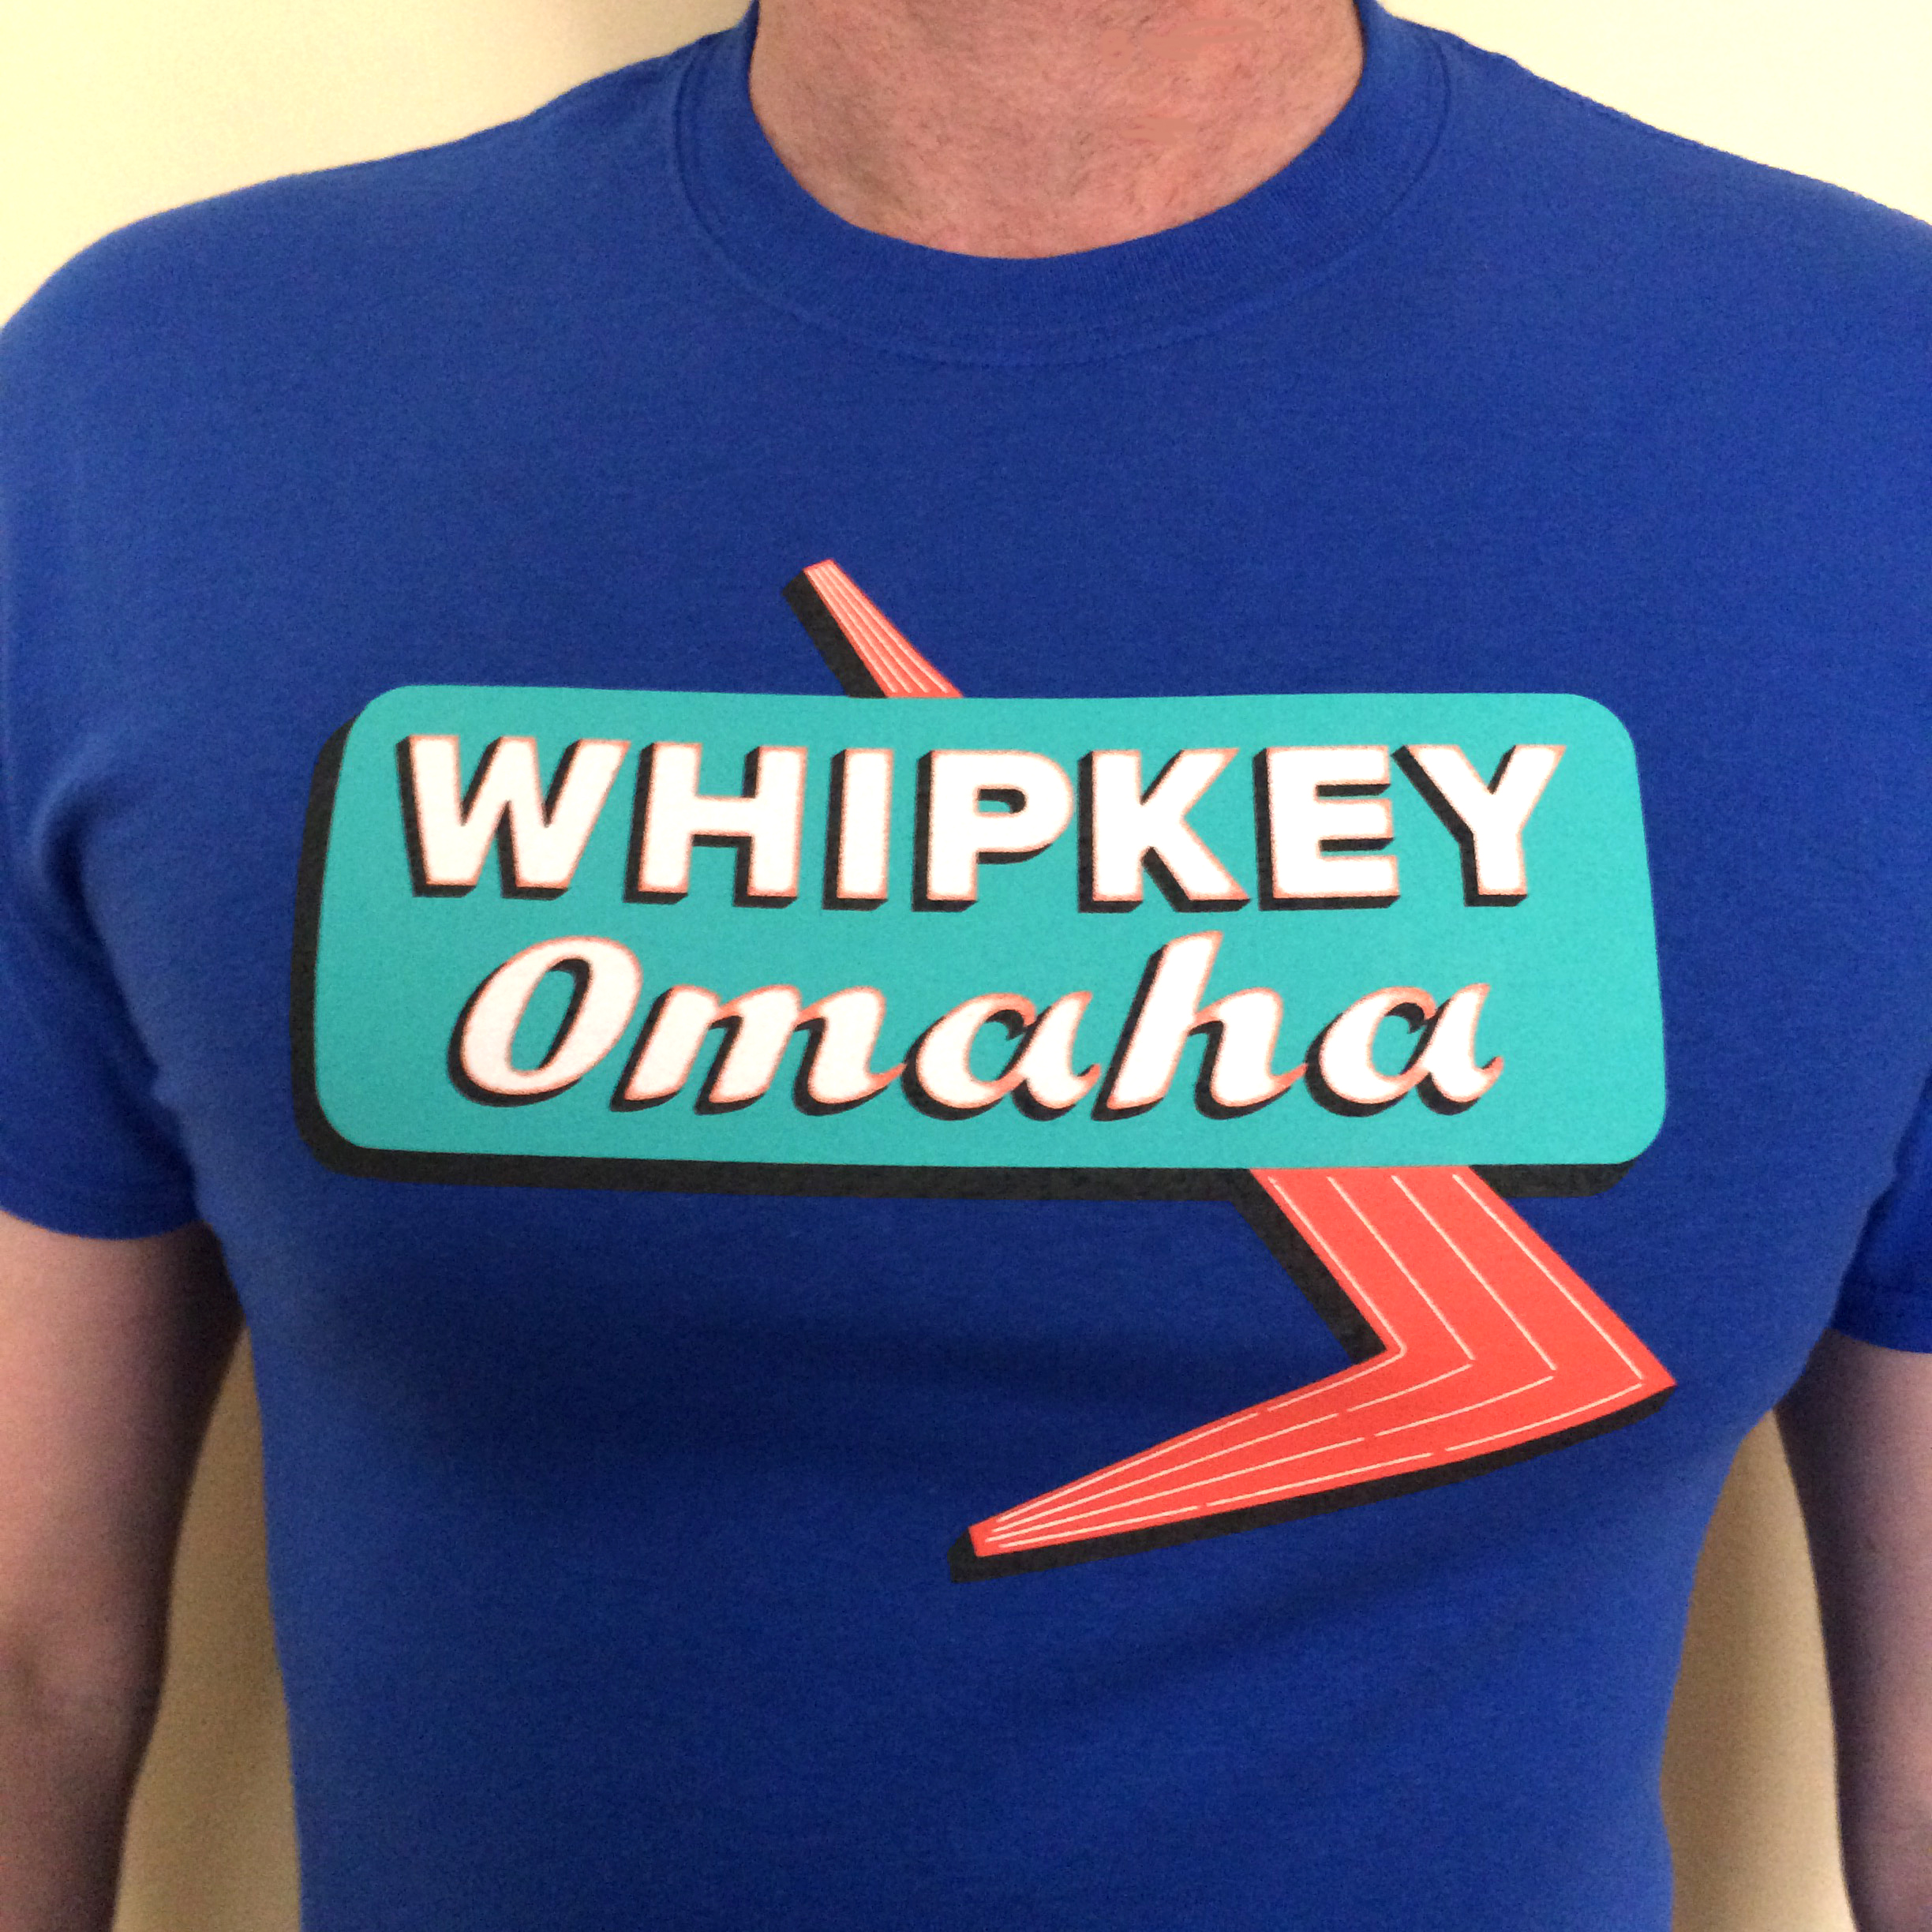 Whipkey omaha t shirt matt whipkey for Wordpress t shirt store theme free